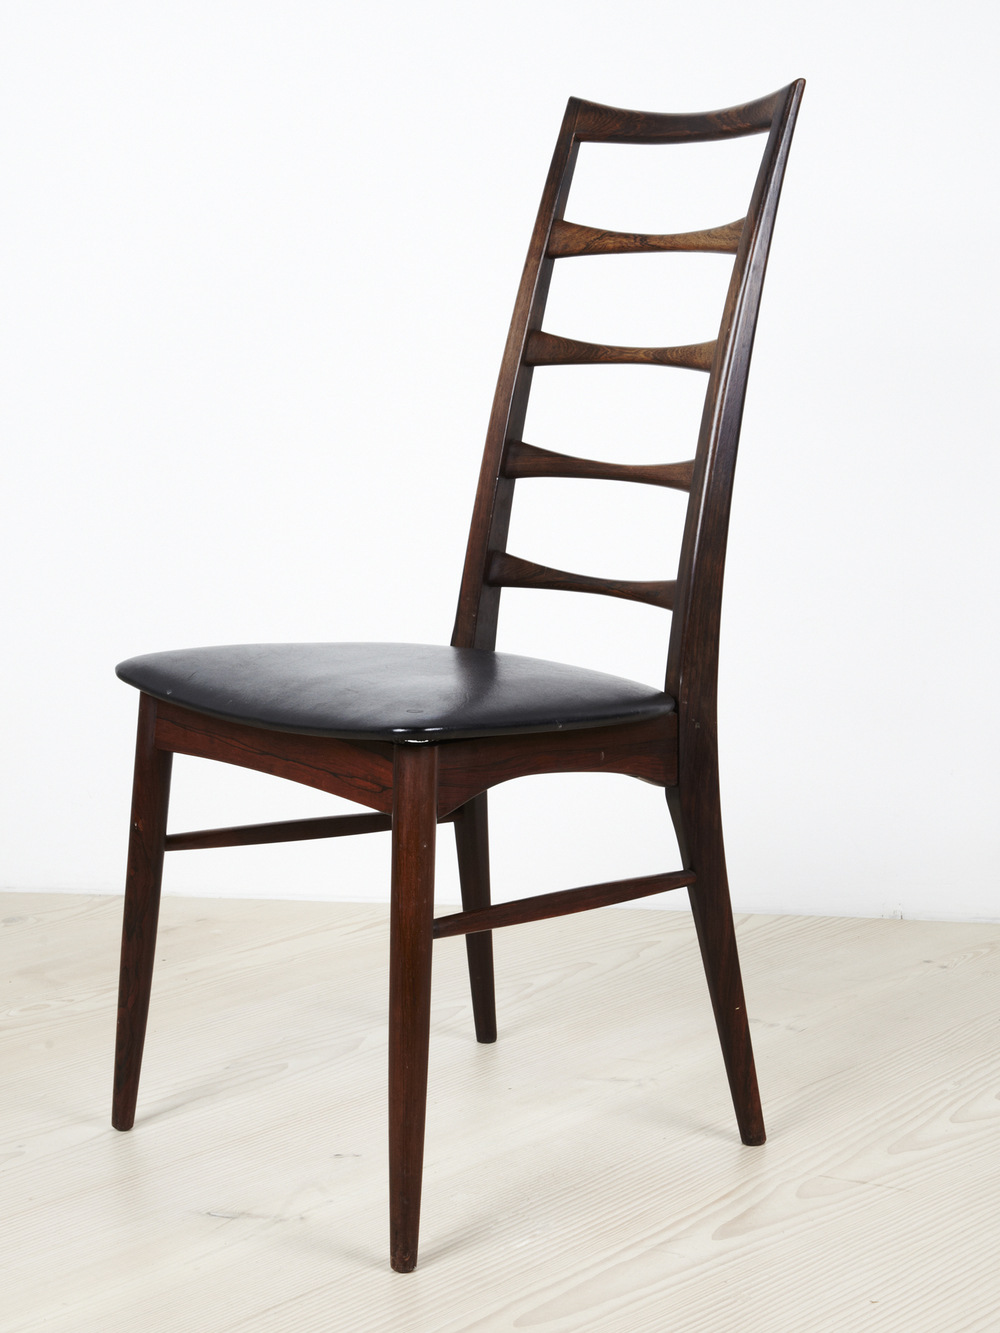 N Kofoed 1964 Ladderback Dining Chair • made 1964-69 •